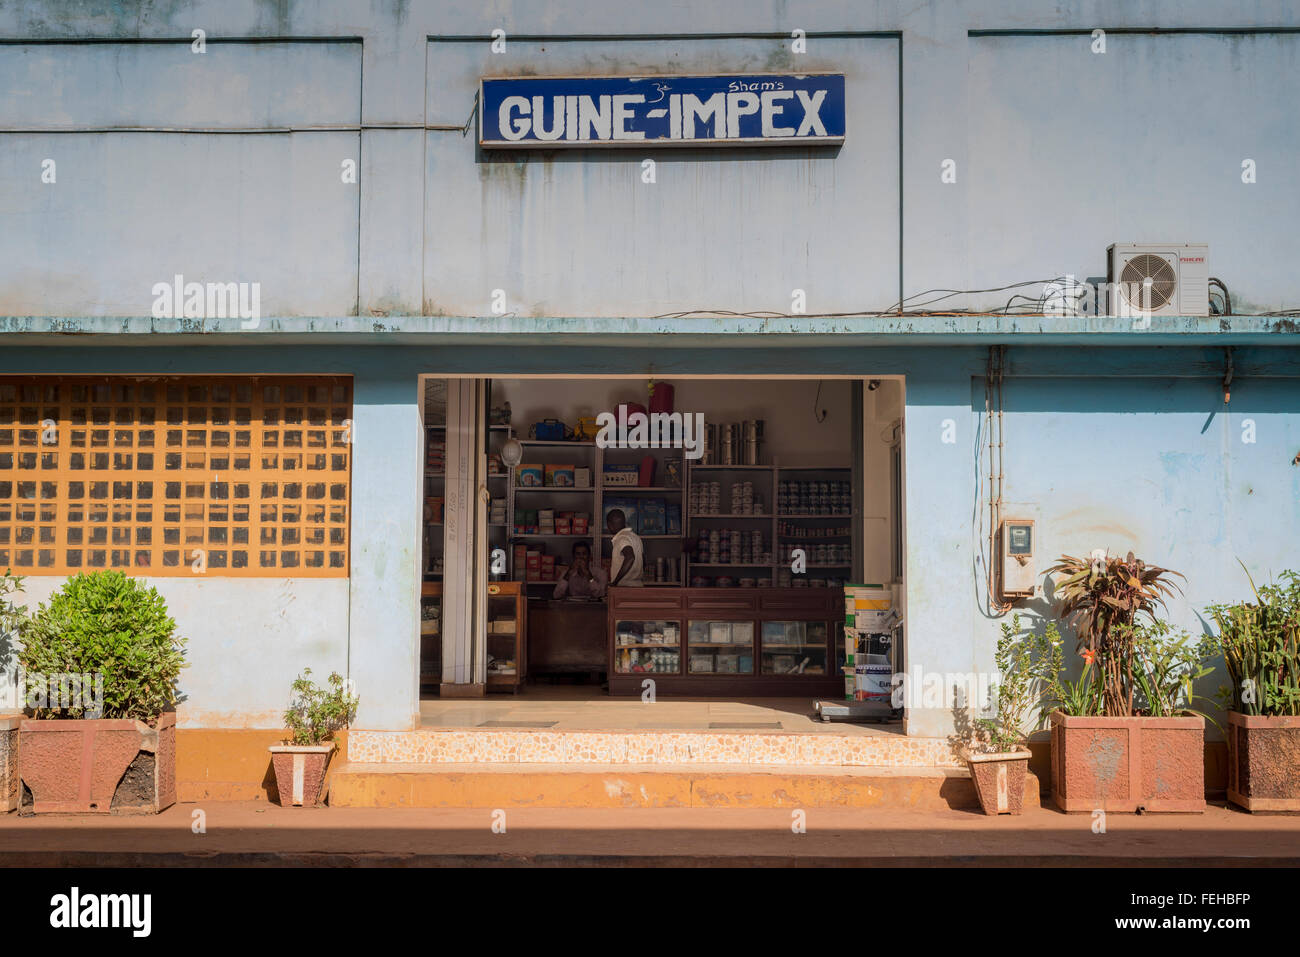 A shop in the Guinea Bissau captial city of Bissau - Stock Image